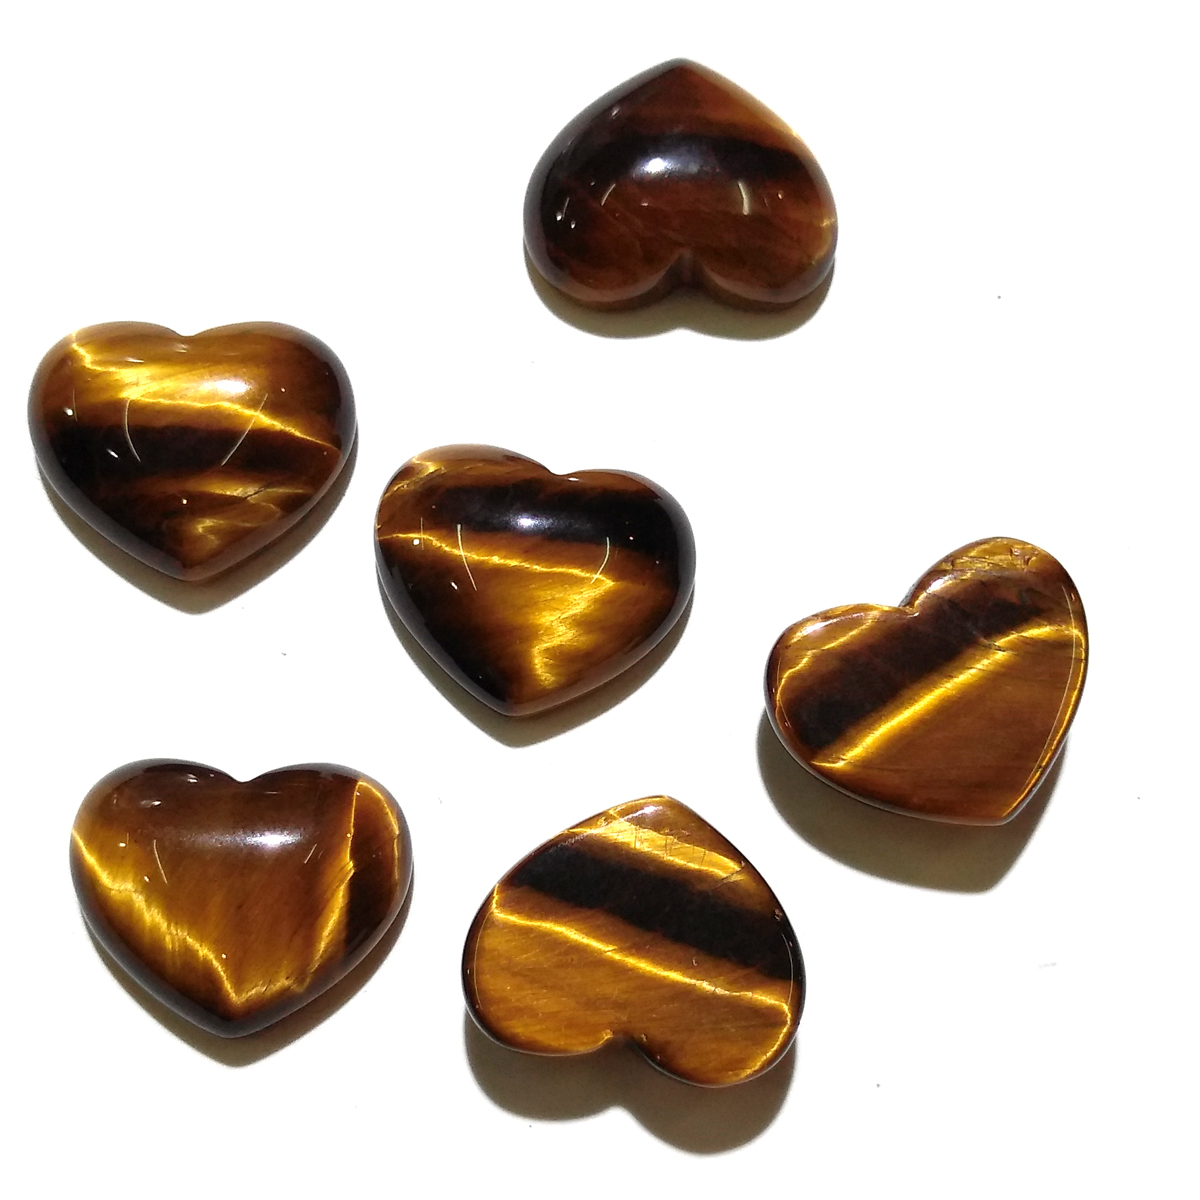 Wholesale Lots Bulk 10 Pieces Natural Stone Pendants Heart Shape Beads Tiger Eye Stone Cabochon No Hole Beads for Jewelry Making in Jewelry Findings Components from Jewelry Accessories